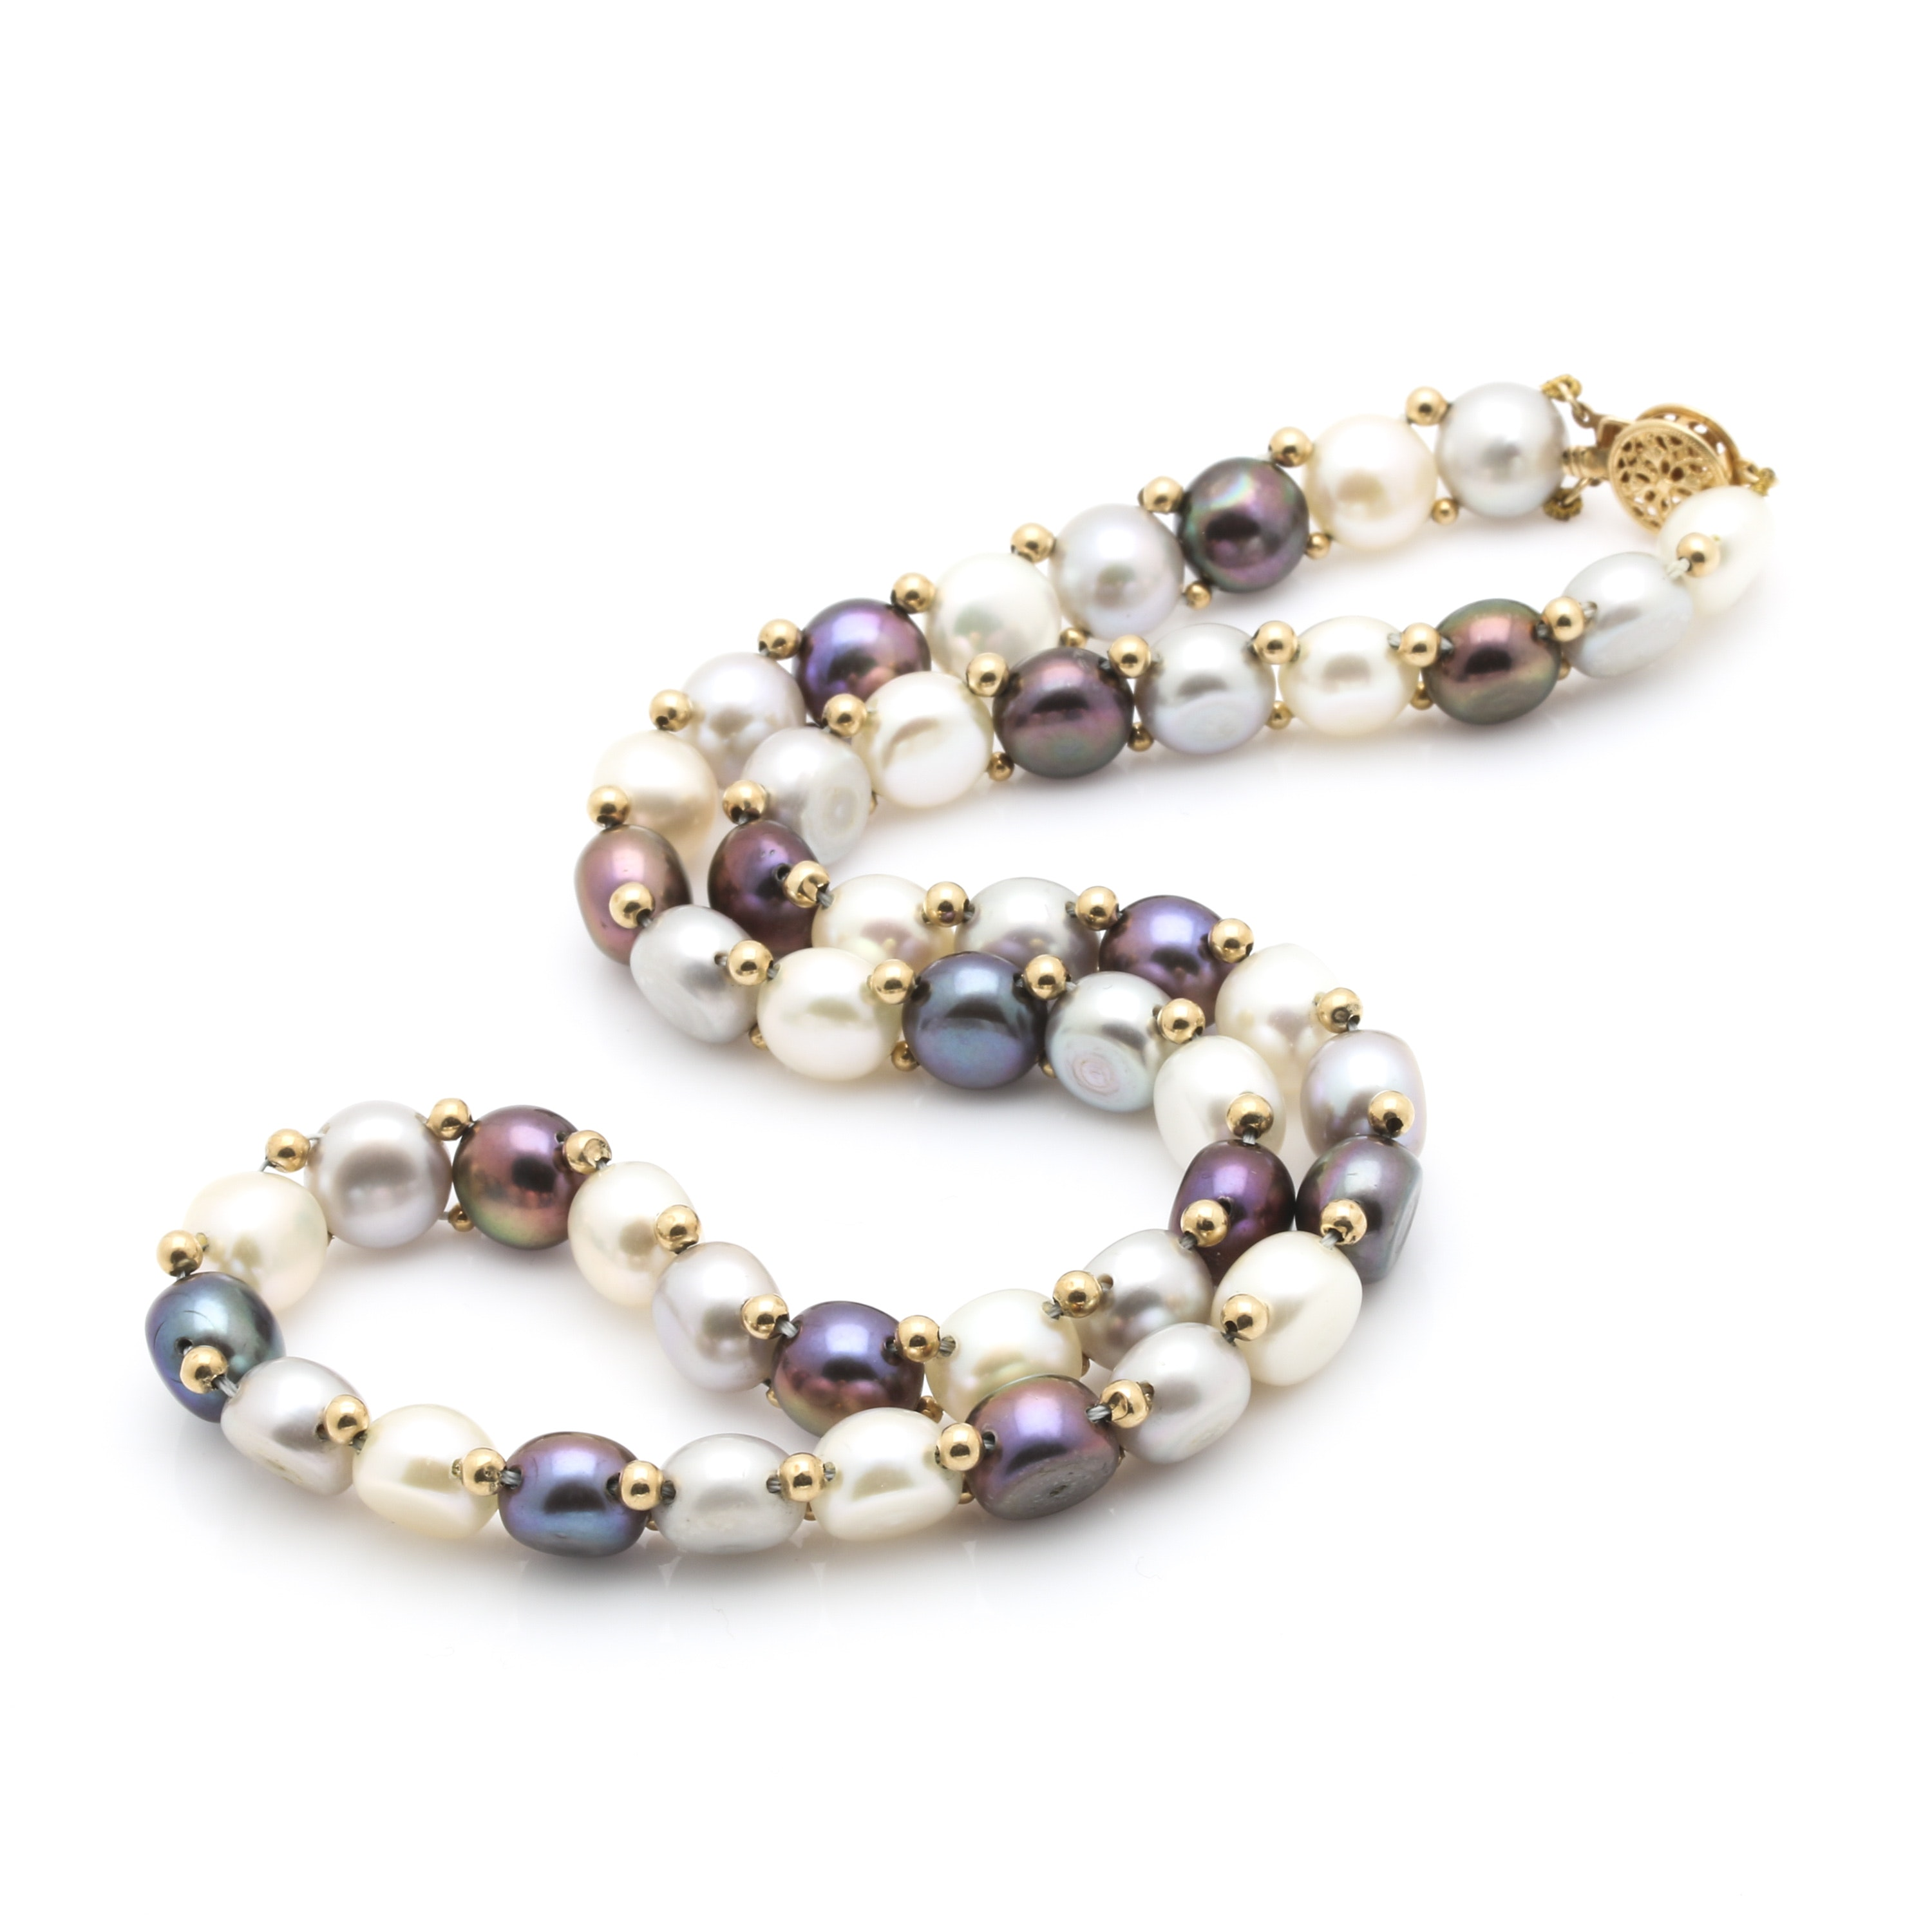 14K Yellow Gold Multicolor Cultured Pearl Necklace